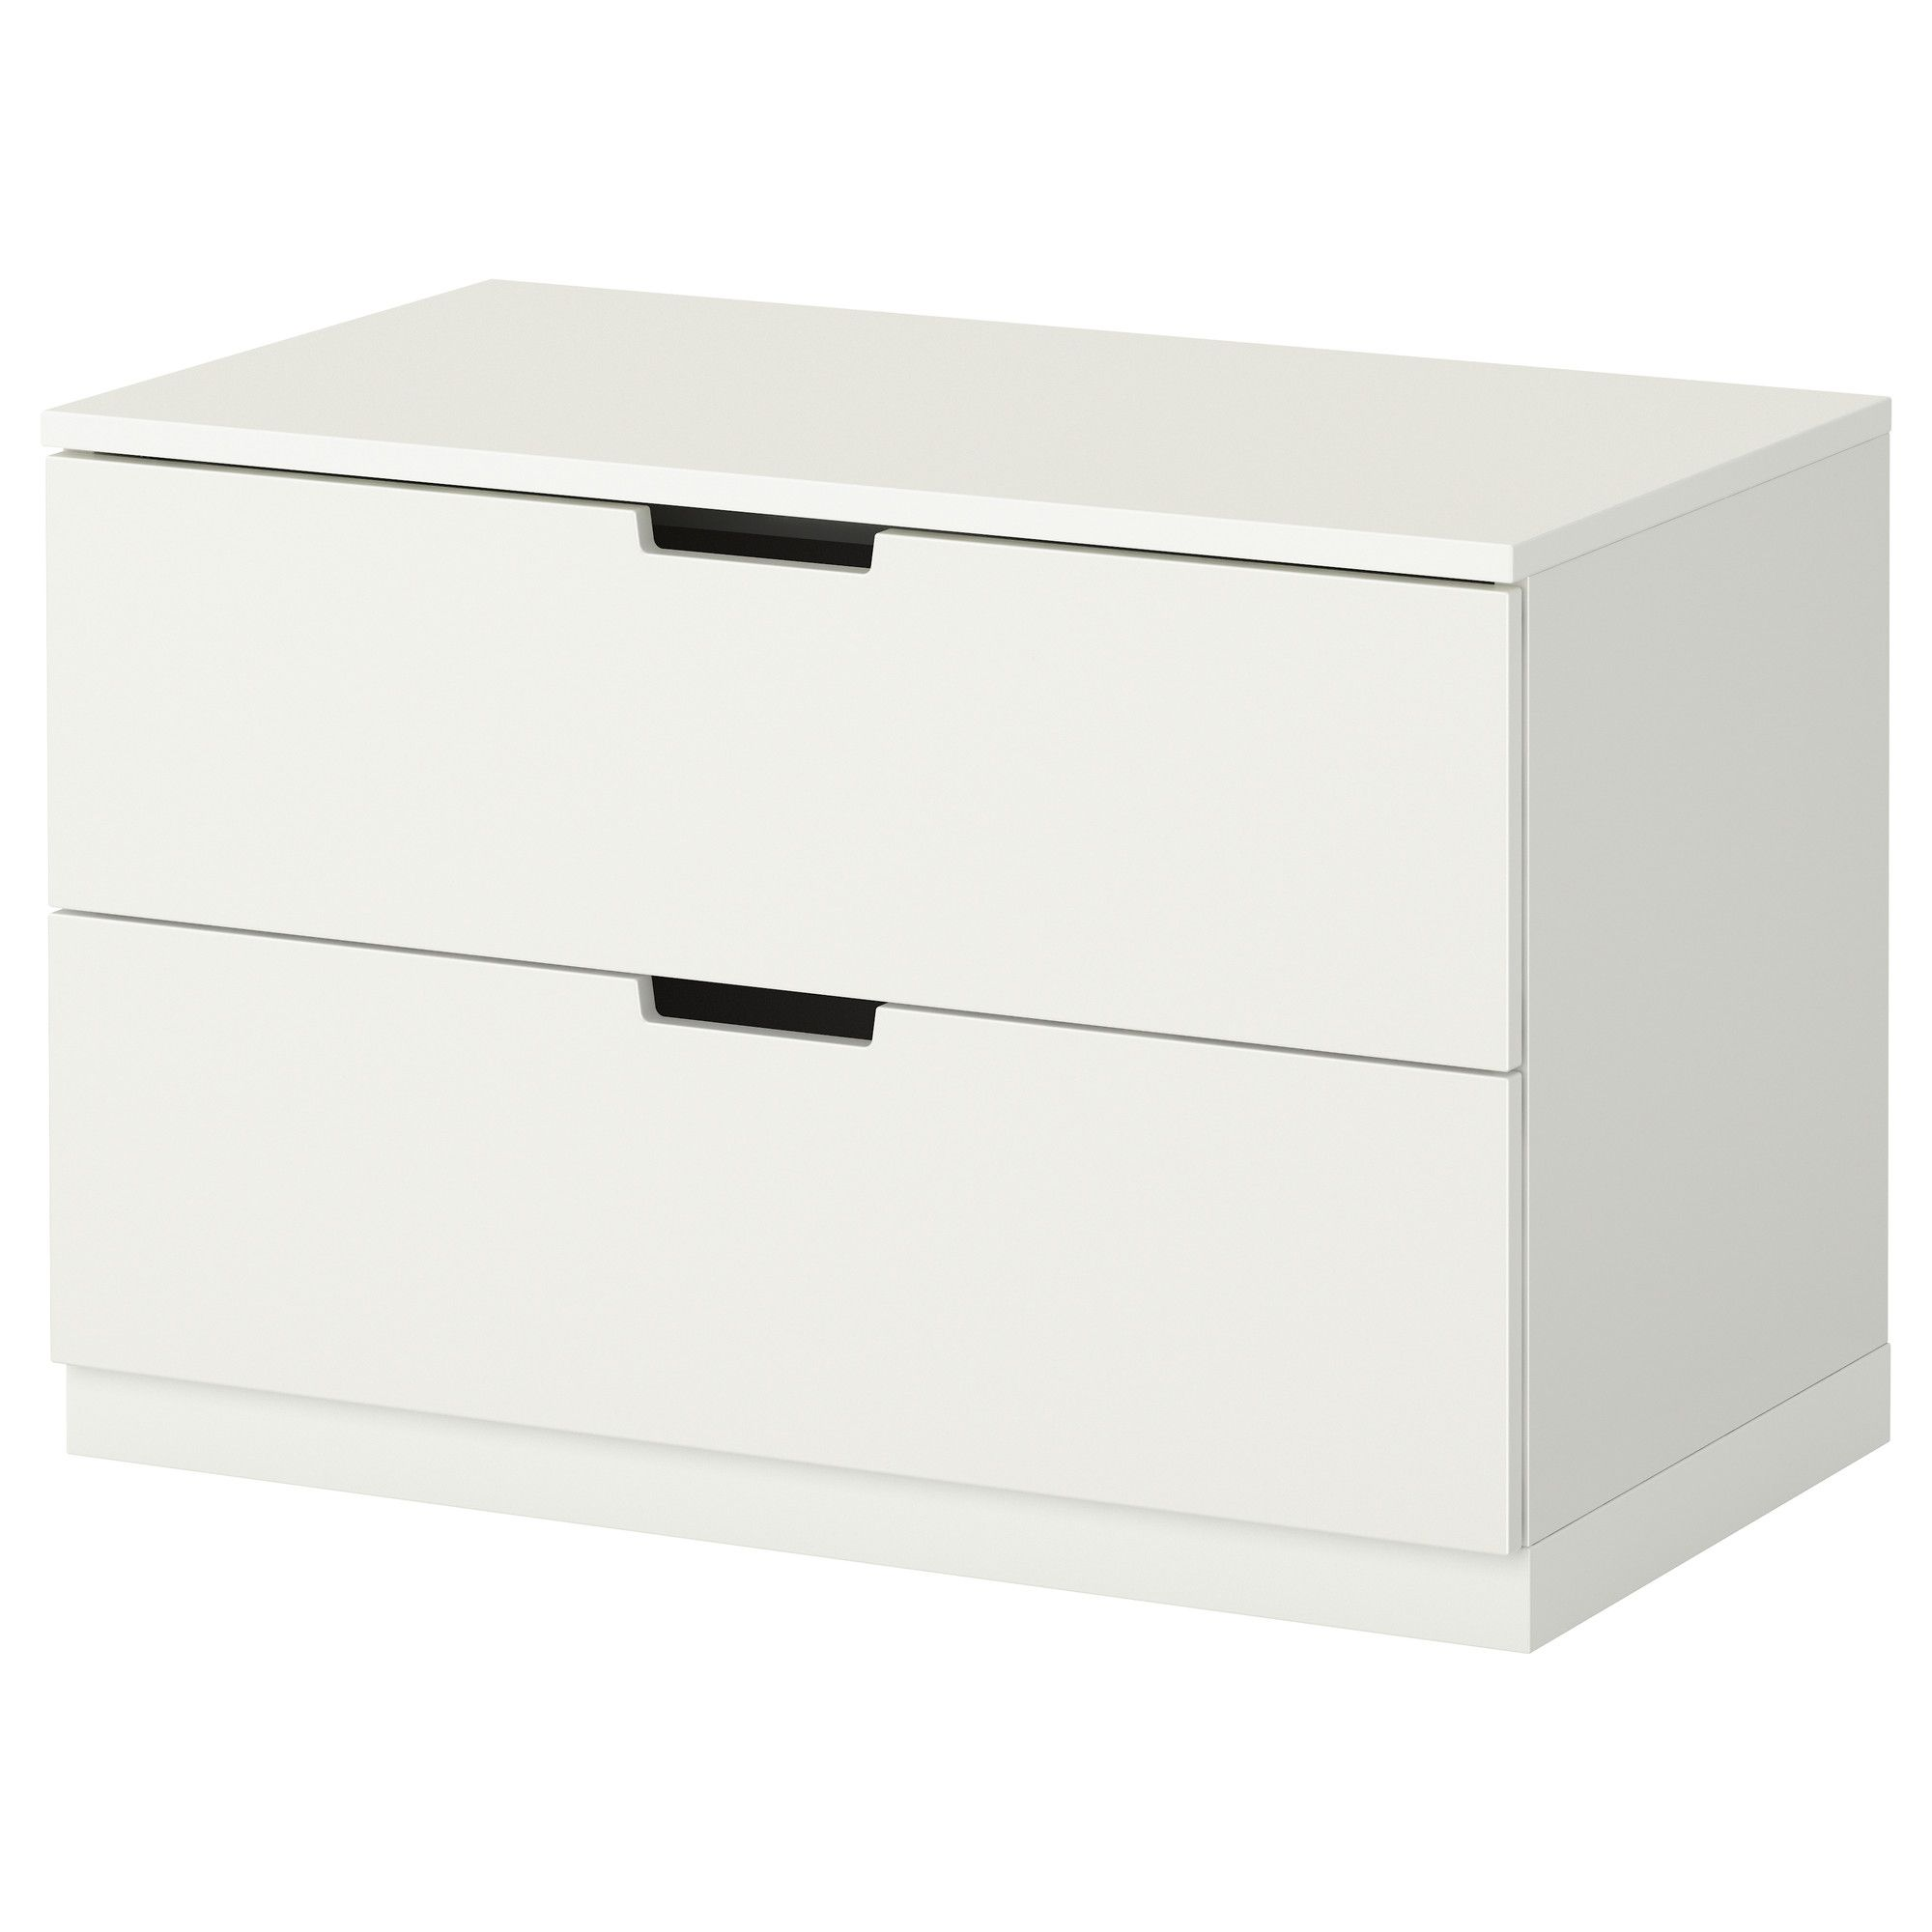 Ikea Kommode 60 X 120 Nordli Chest With 2 Drawers Ikea New Laundry Room Ladekast